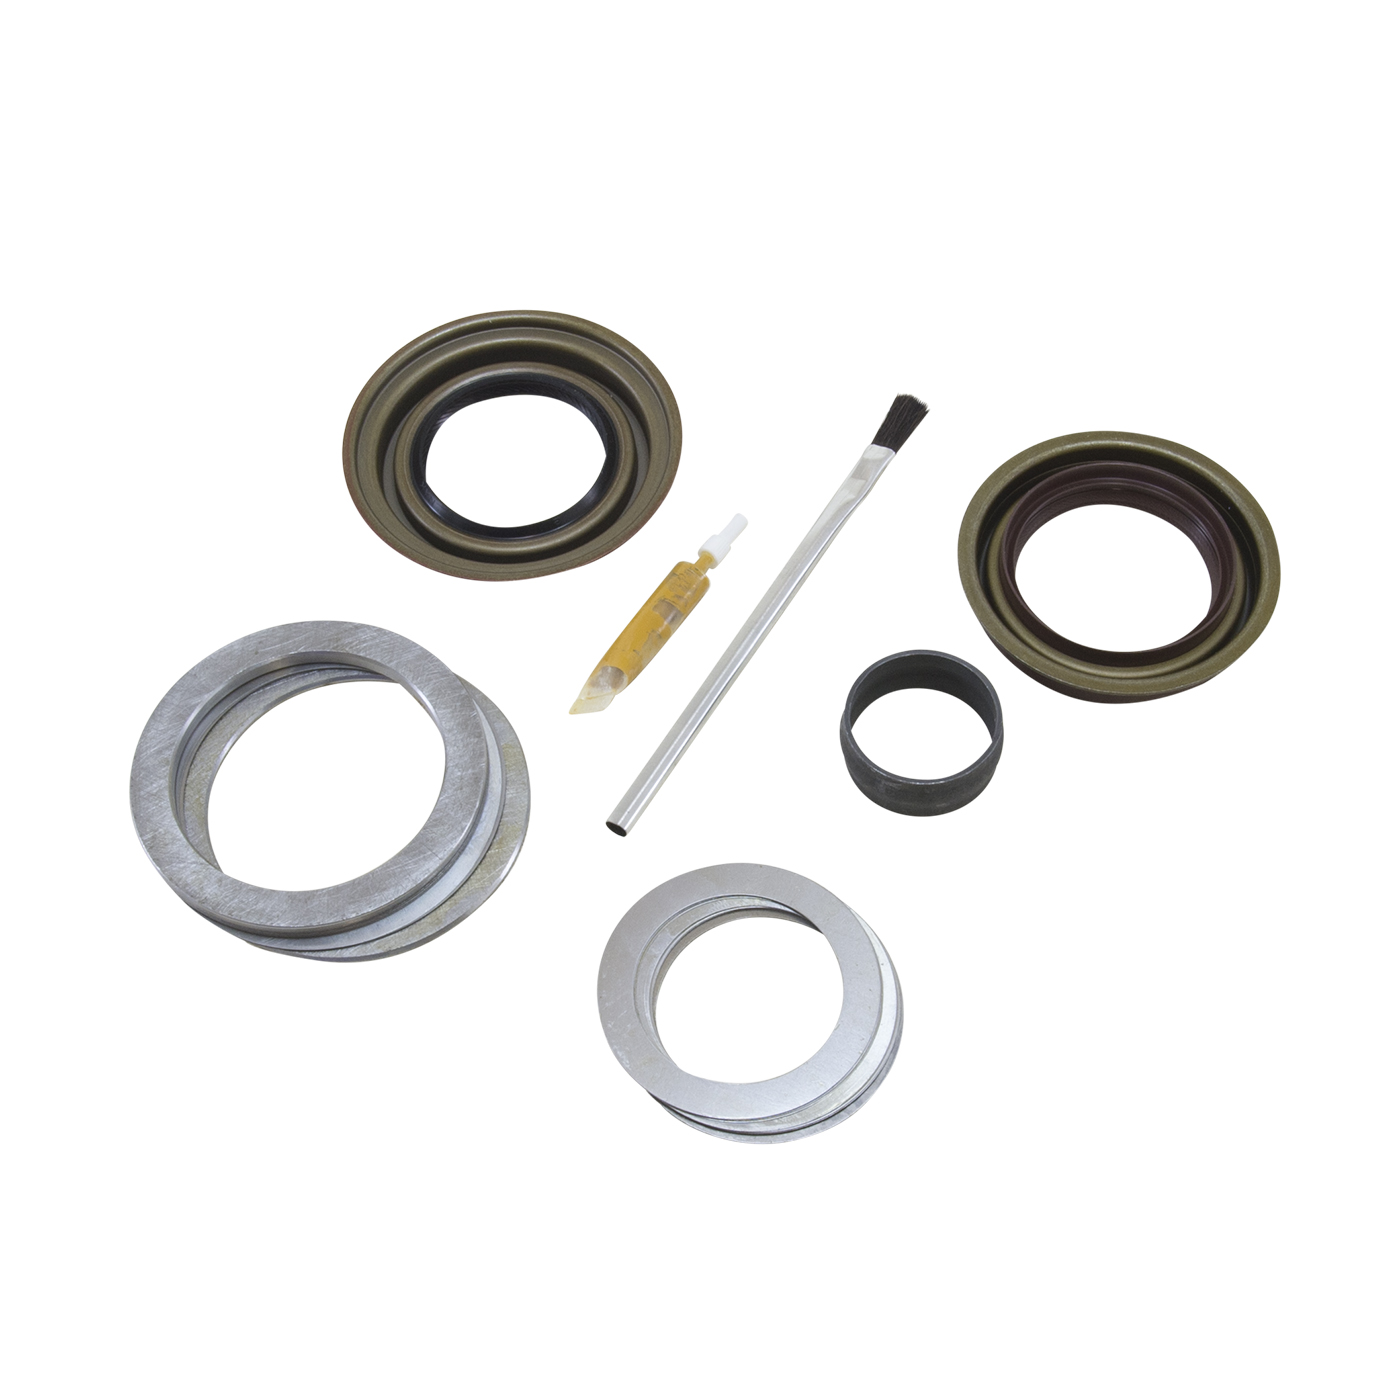 MK GM9.5-B - Yukon Minor install kit for GM 9.5